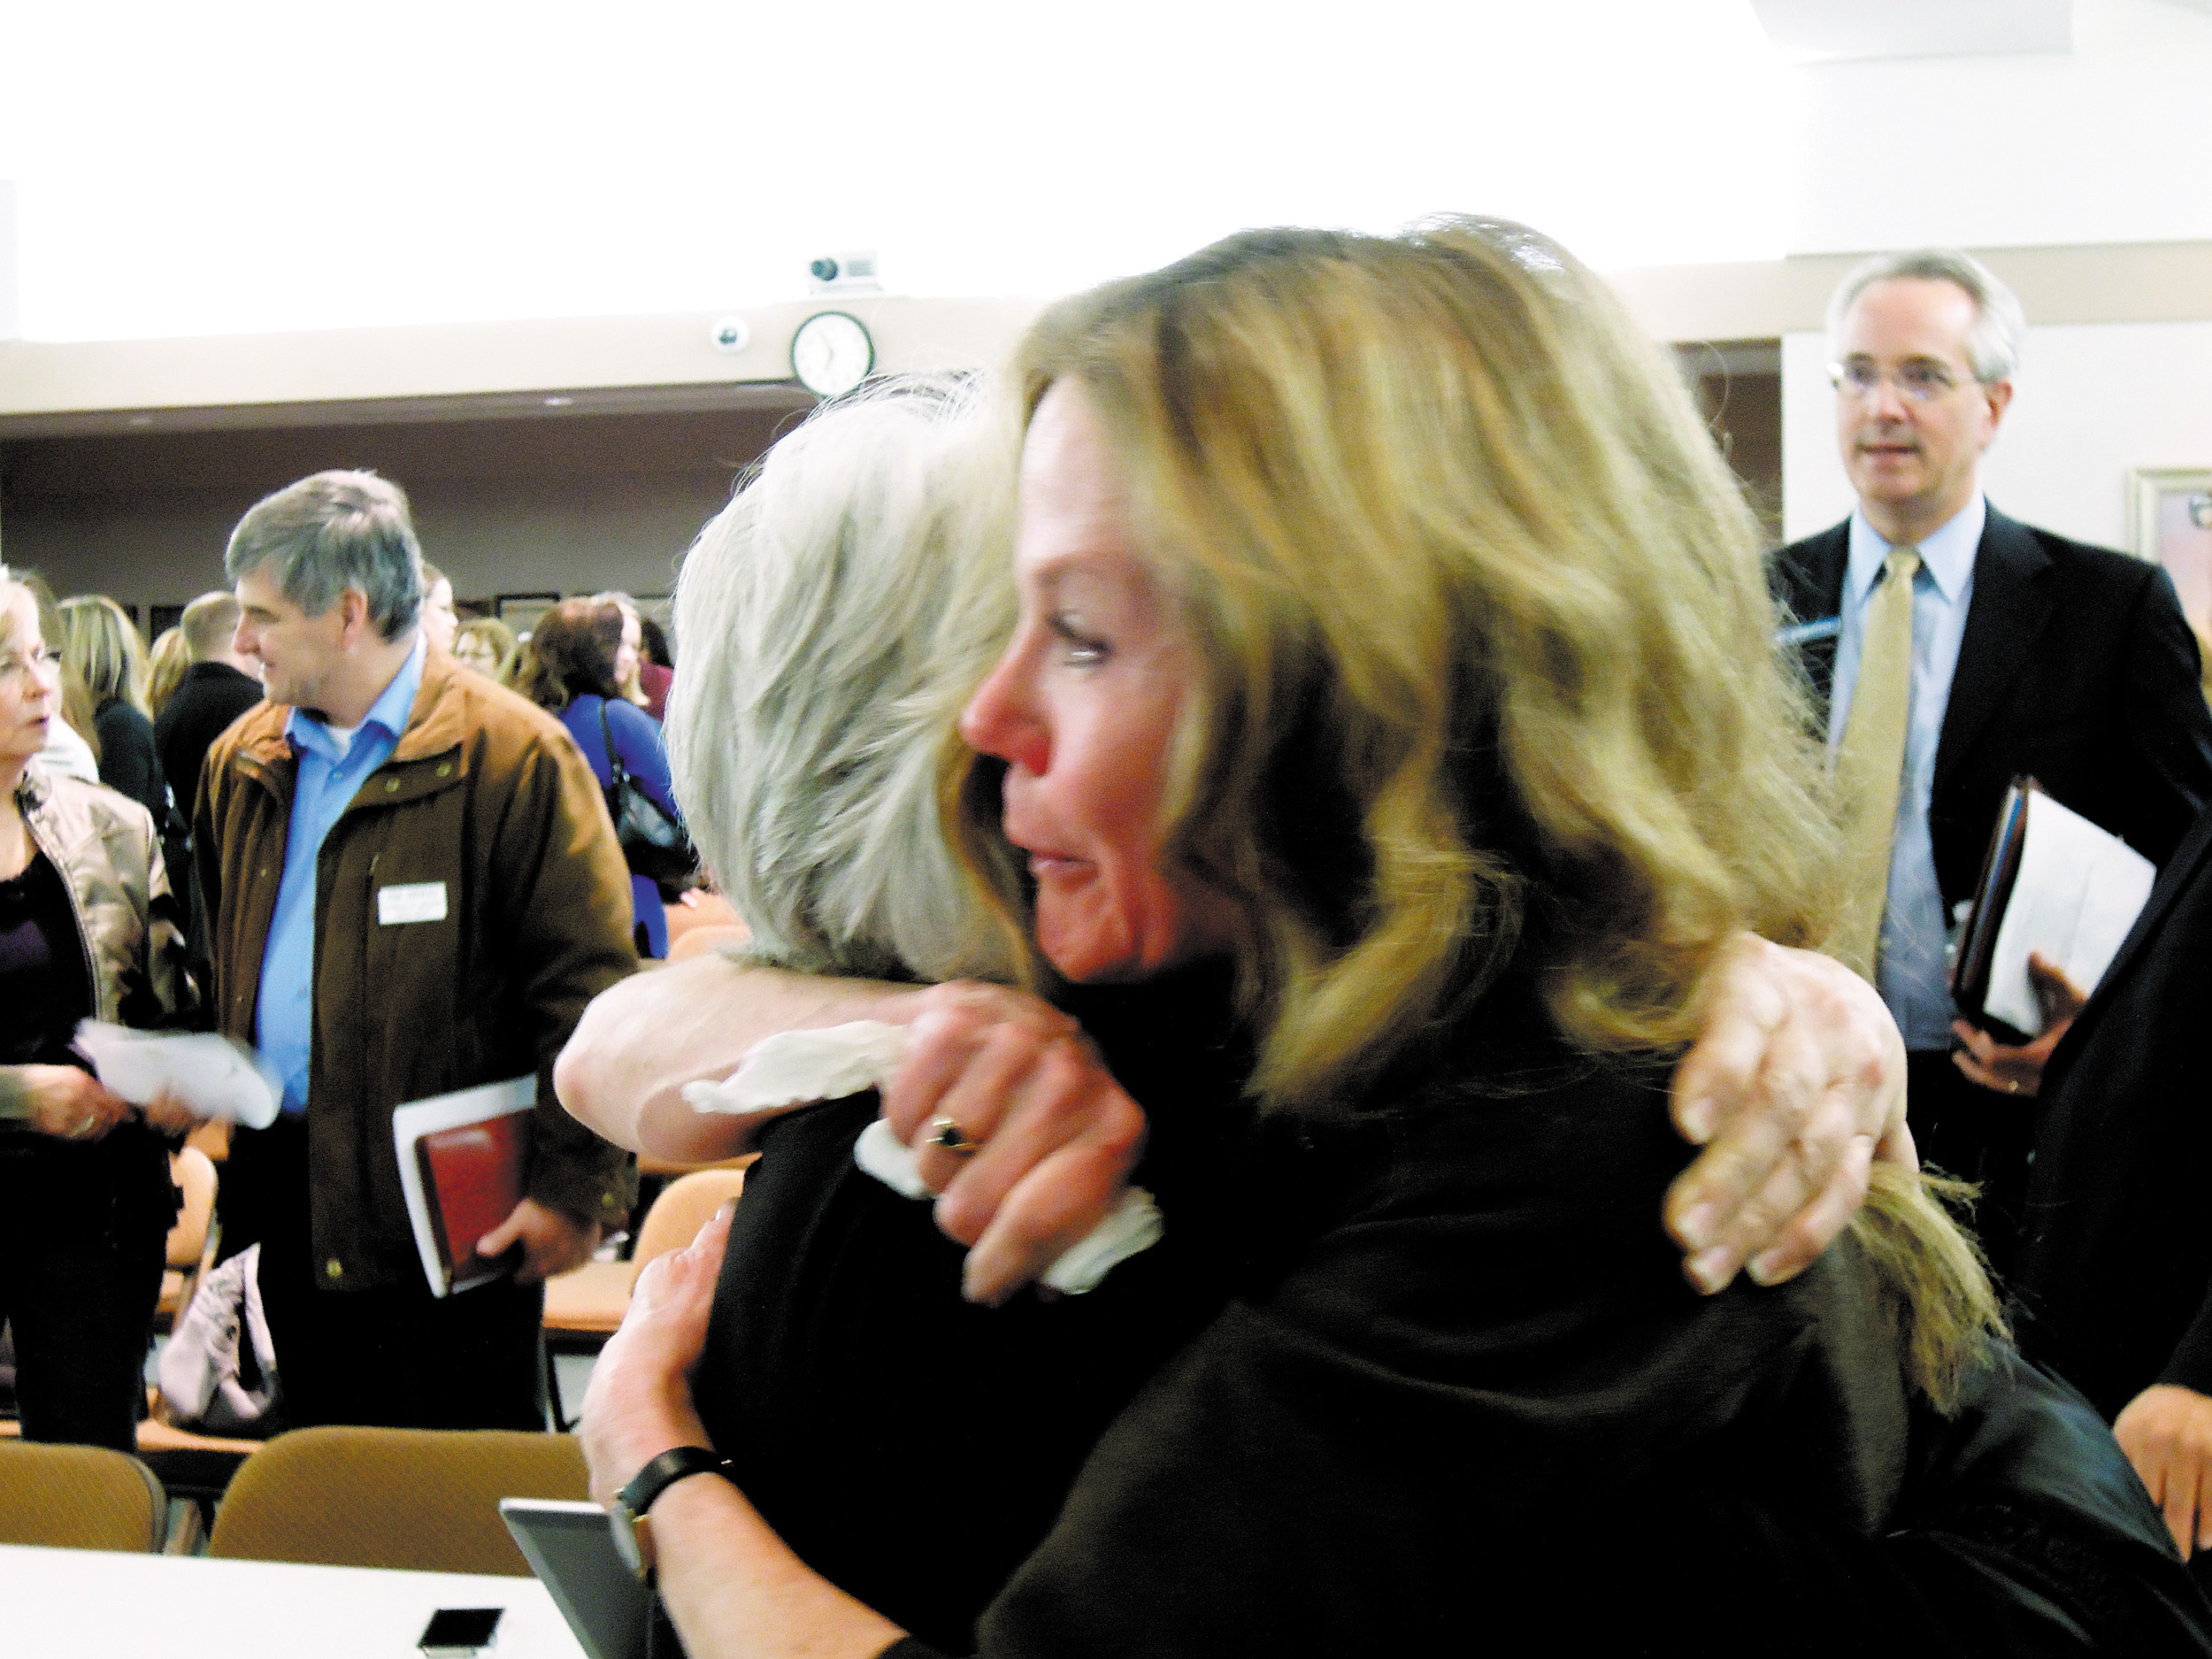 Jeffco Schools Superintendent Cindy Stevenson got a hug from a supporter after she announced her retirement during a Nov. 7 school board meeting. Stevenson resigned Saturday saying her relationship with the newly structured board is unworkable.